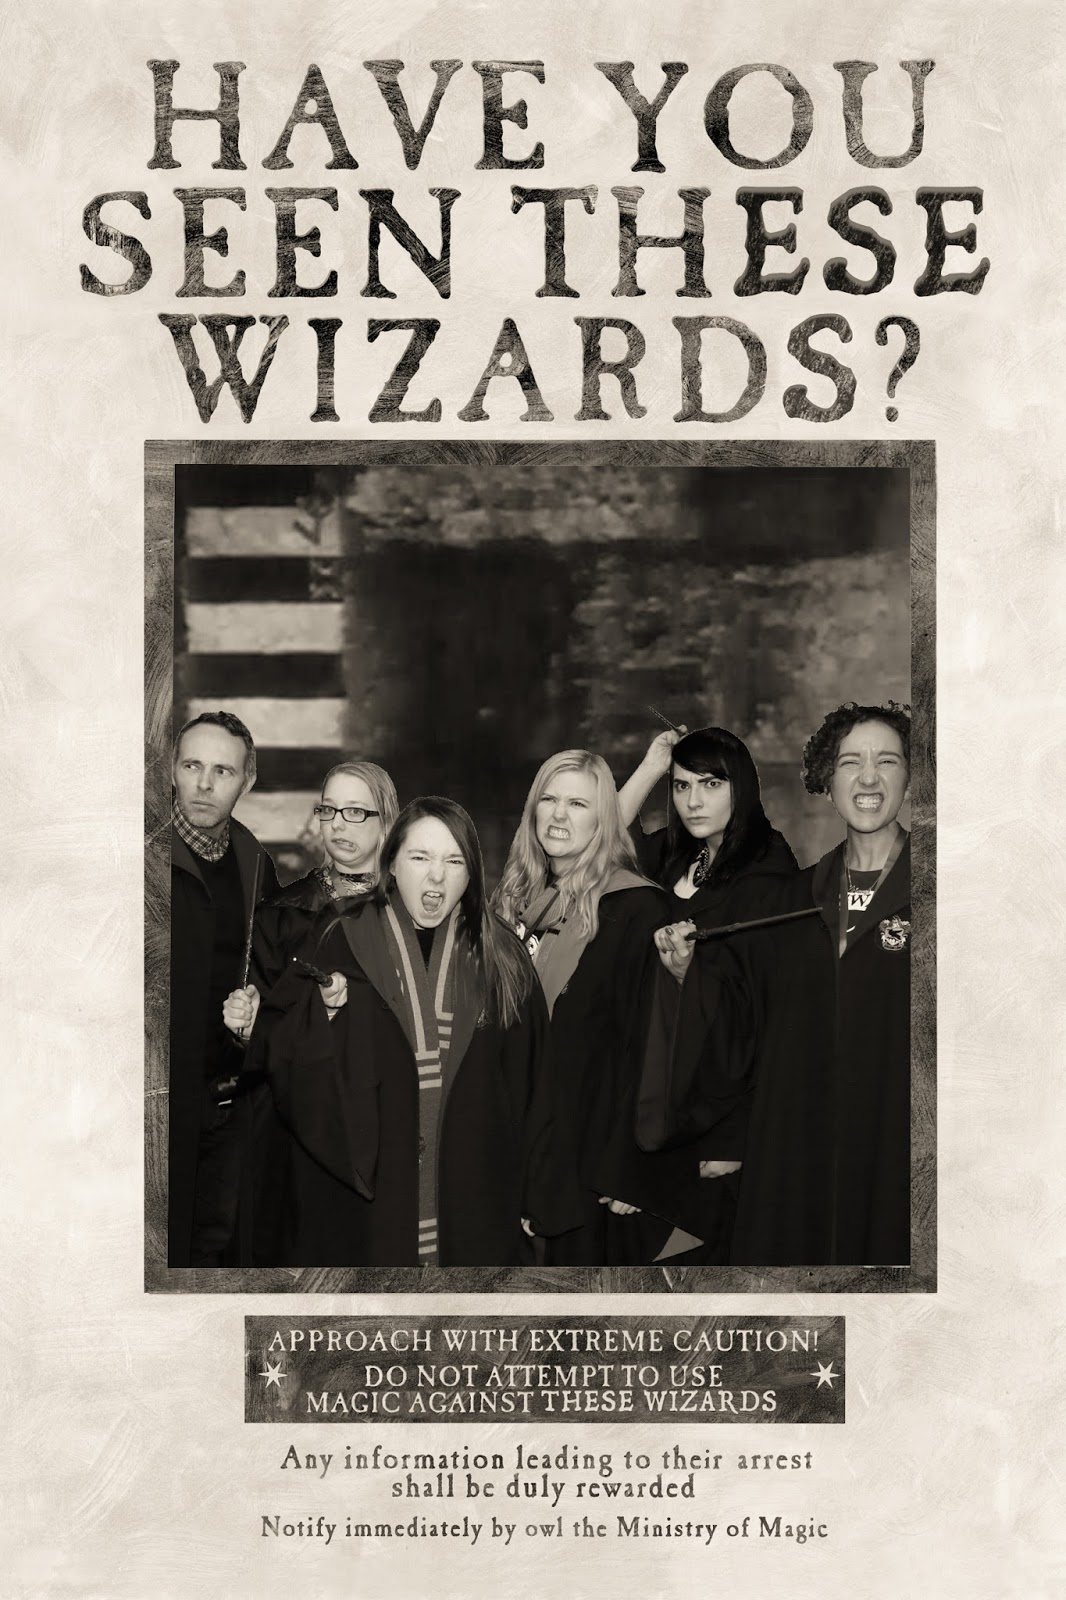 Wanted wizards poster at Hogwarts in the Snow at Warner Brothers Studio Tour, London